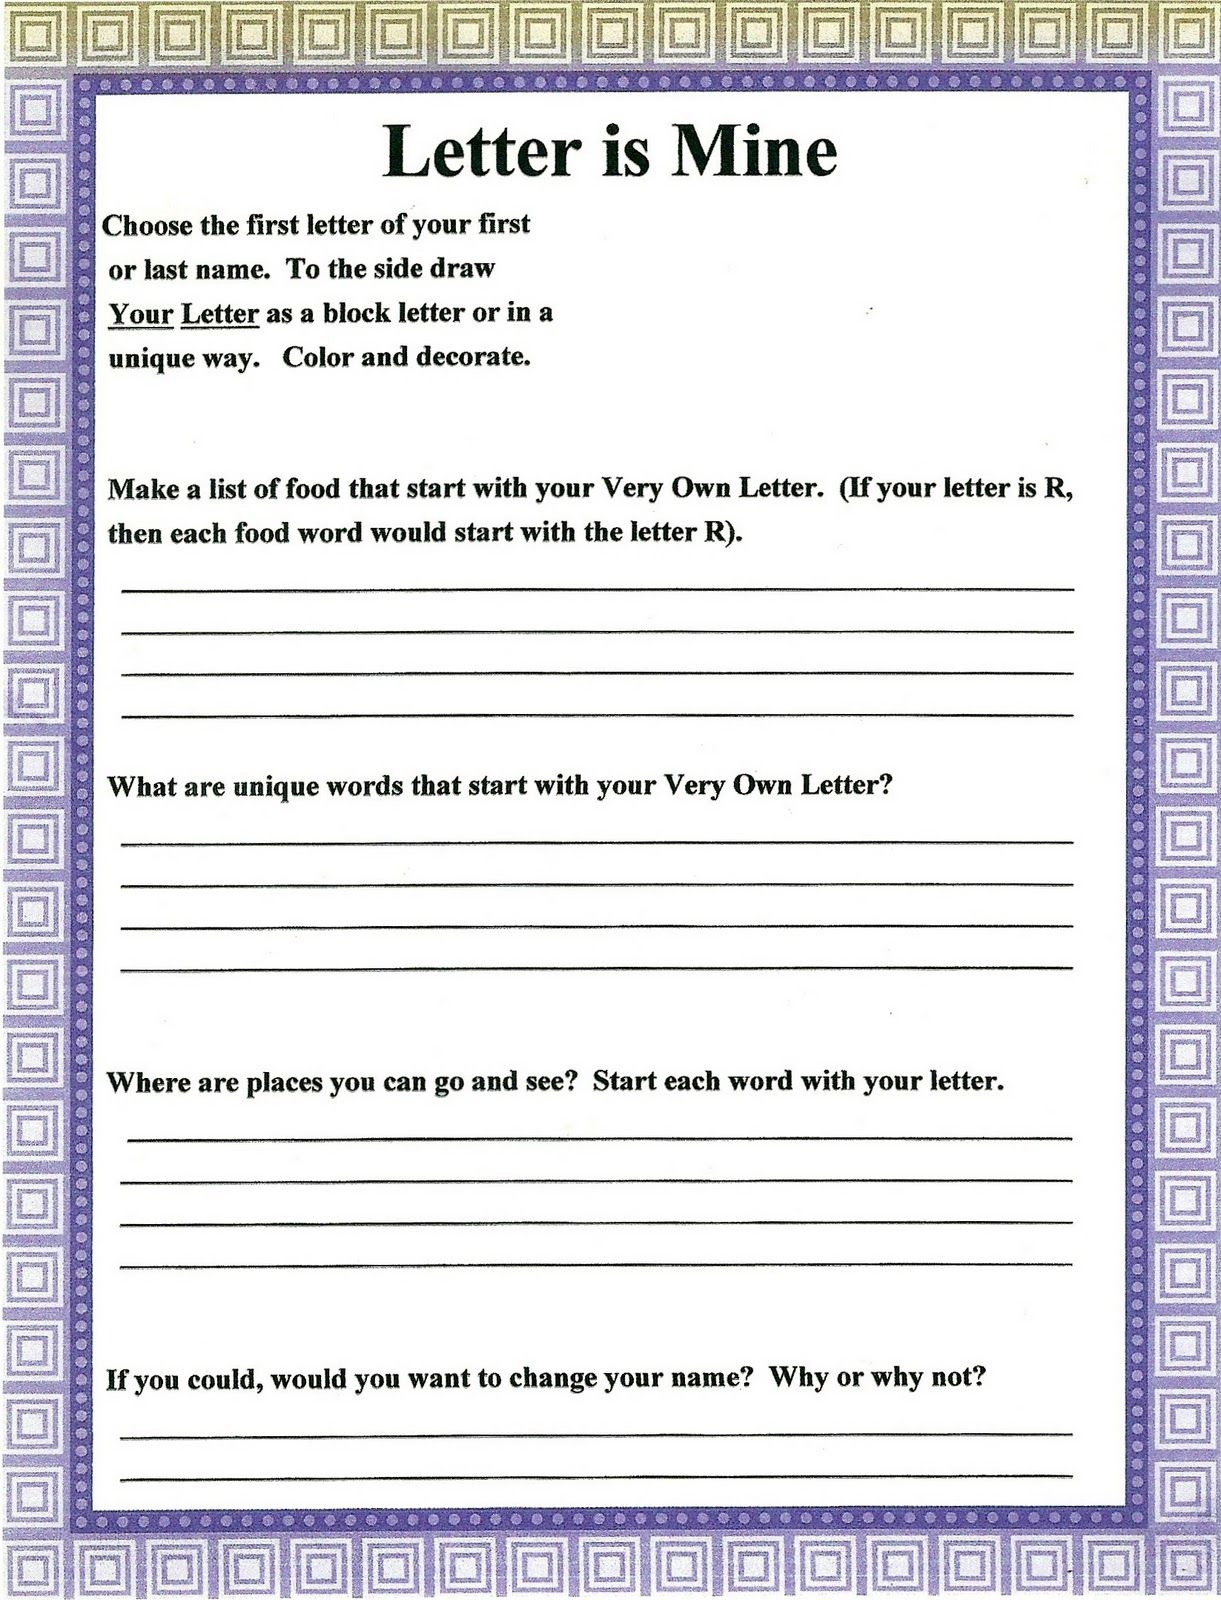 worksheet Character Counts Worksheets lorinda character education my favorite and letter is mine self education